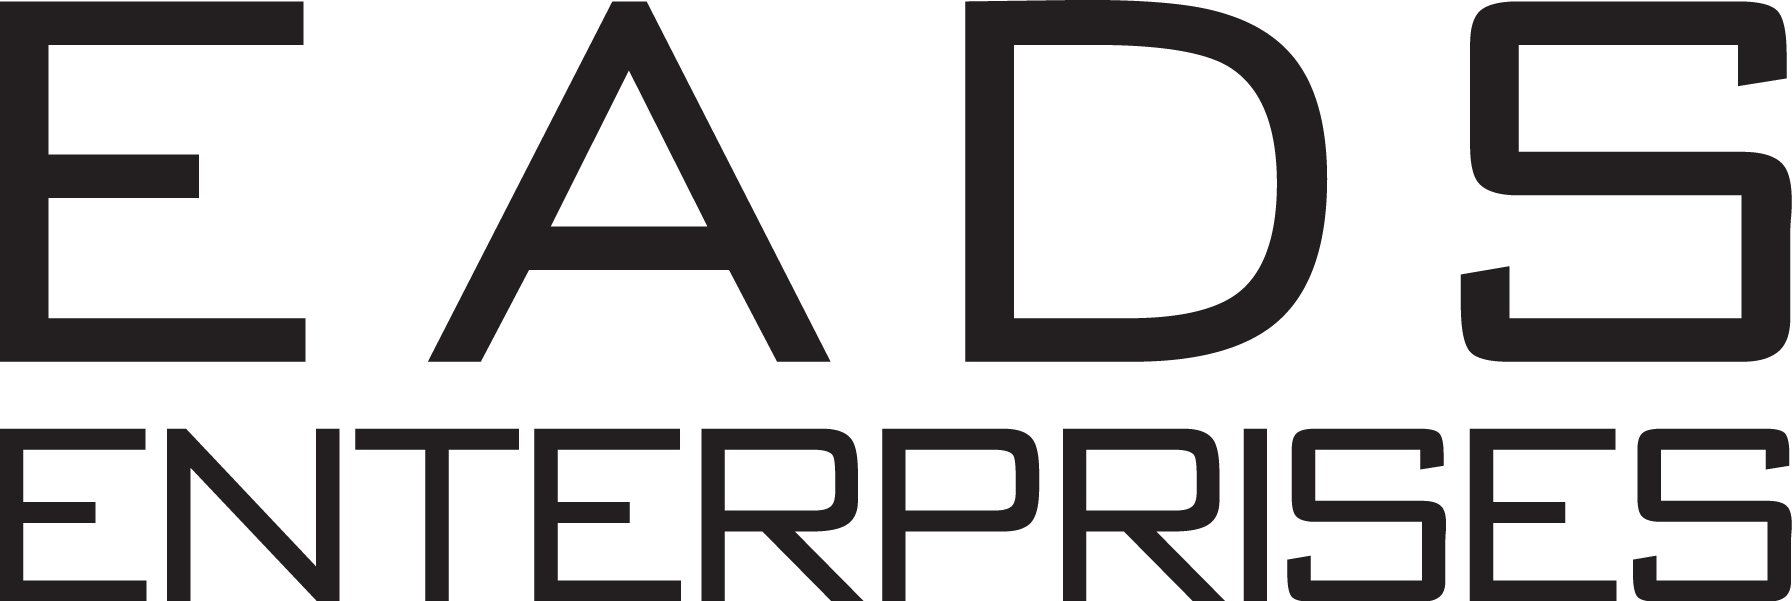 Eads Enterprises